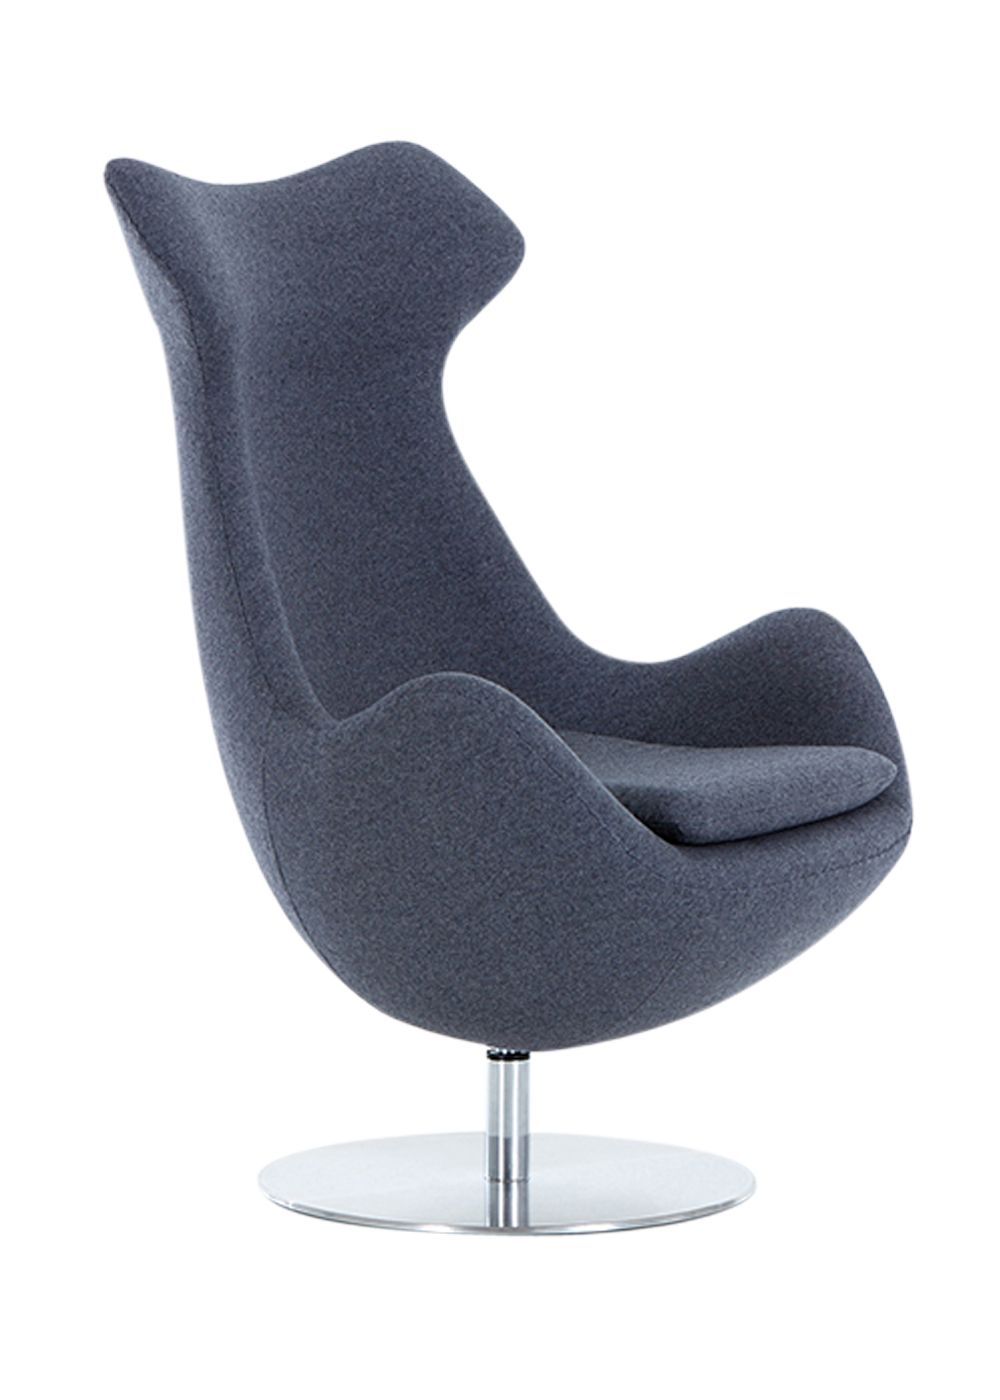 Fauteuil Cocoon Home Pinterest Egg Chair And Arne Jacobsen - Formation decorateur interieur avec fauteuil a oreille design